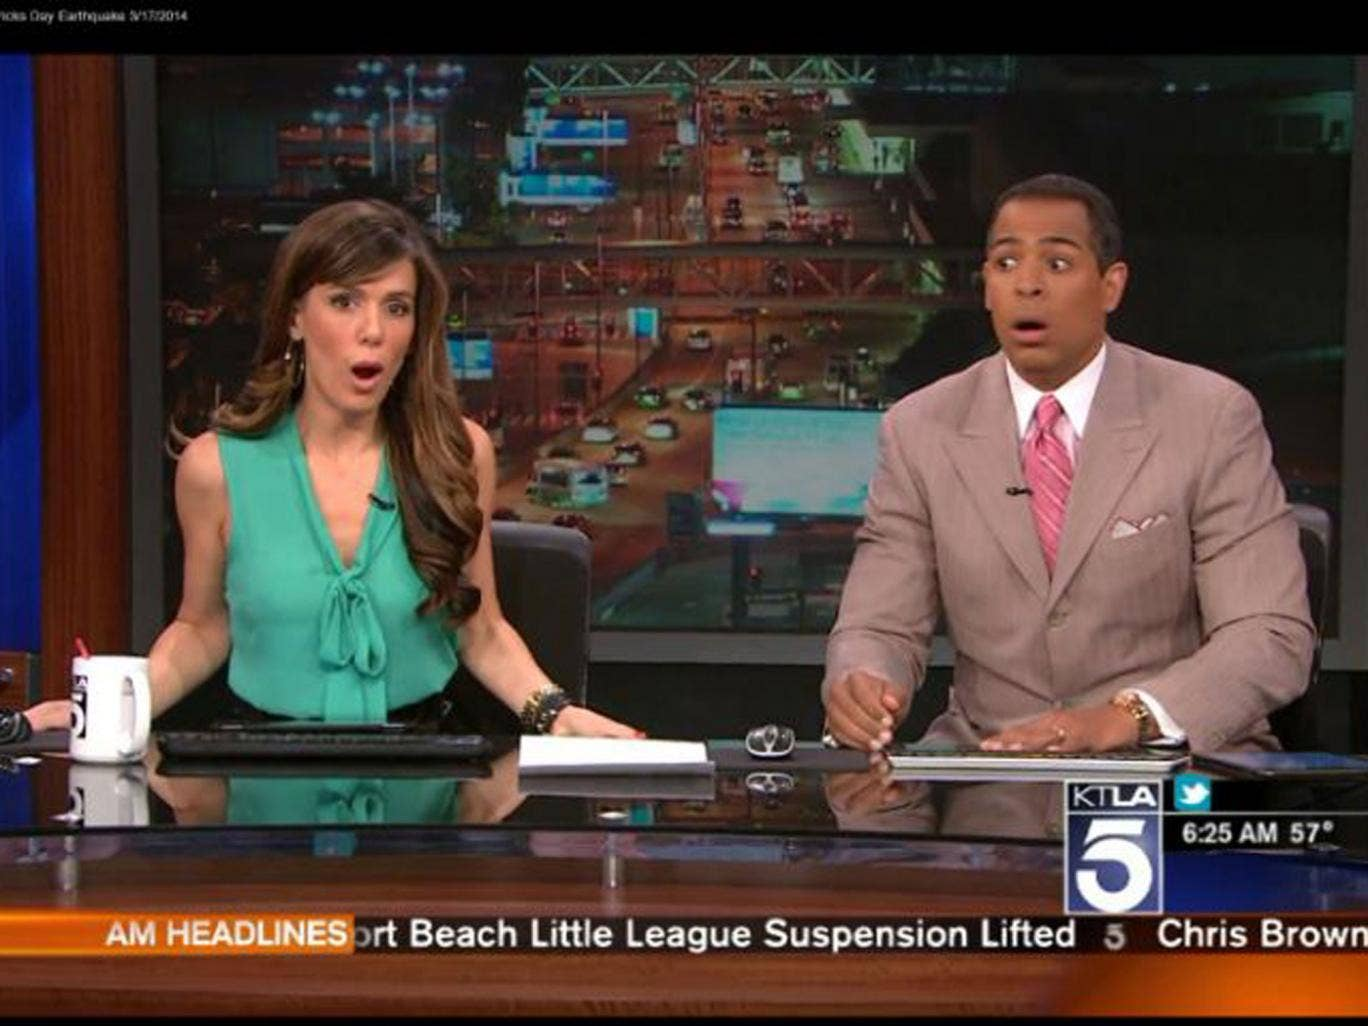 KTLA presenters broadcast while a 4.4 earthquake rumbles through Los Angeles on 17 March